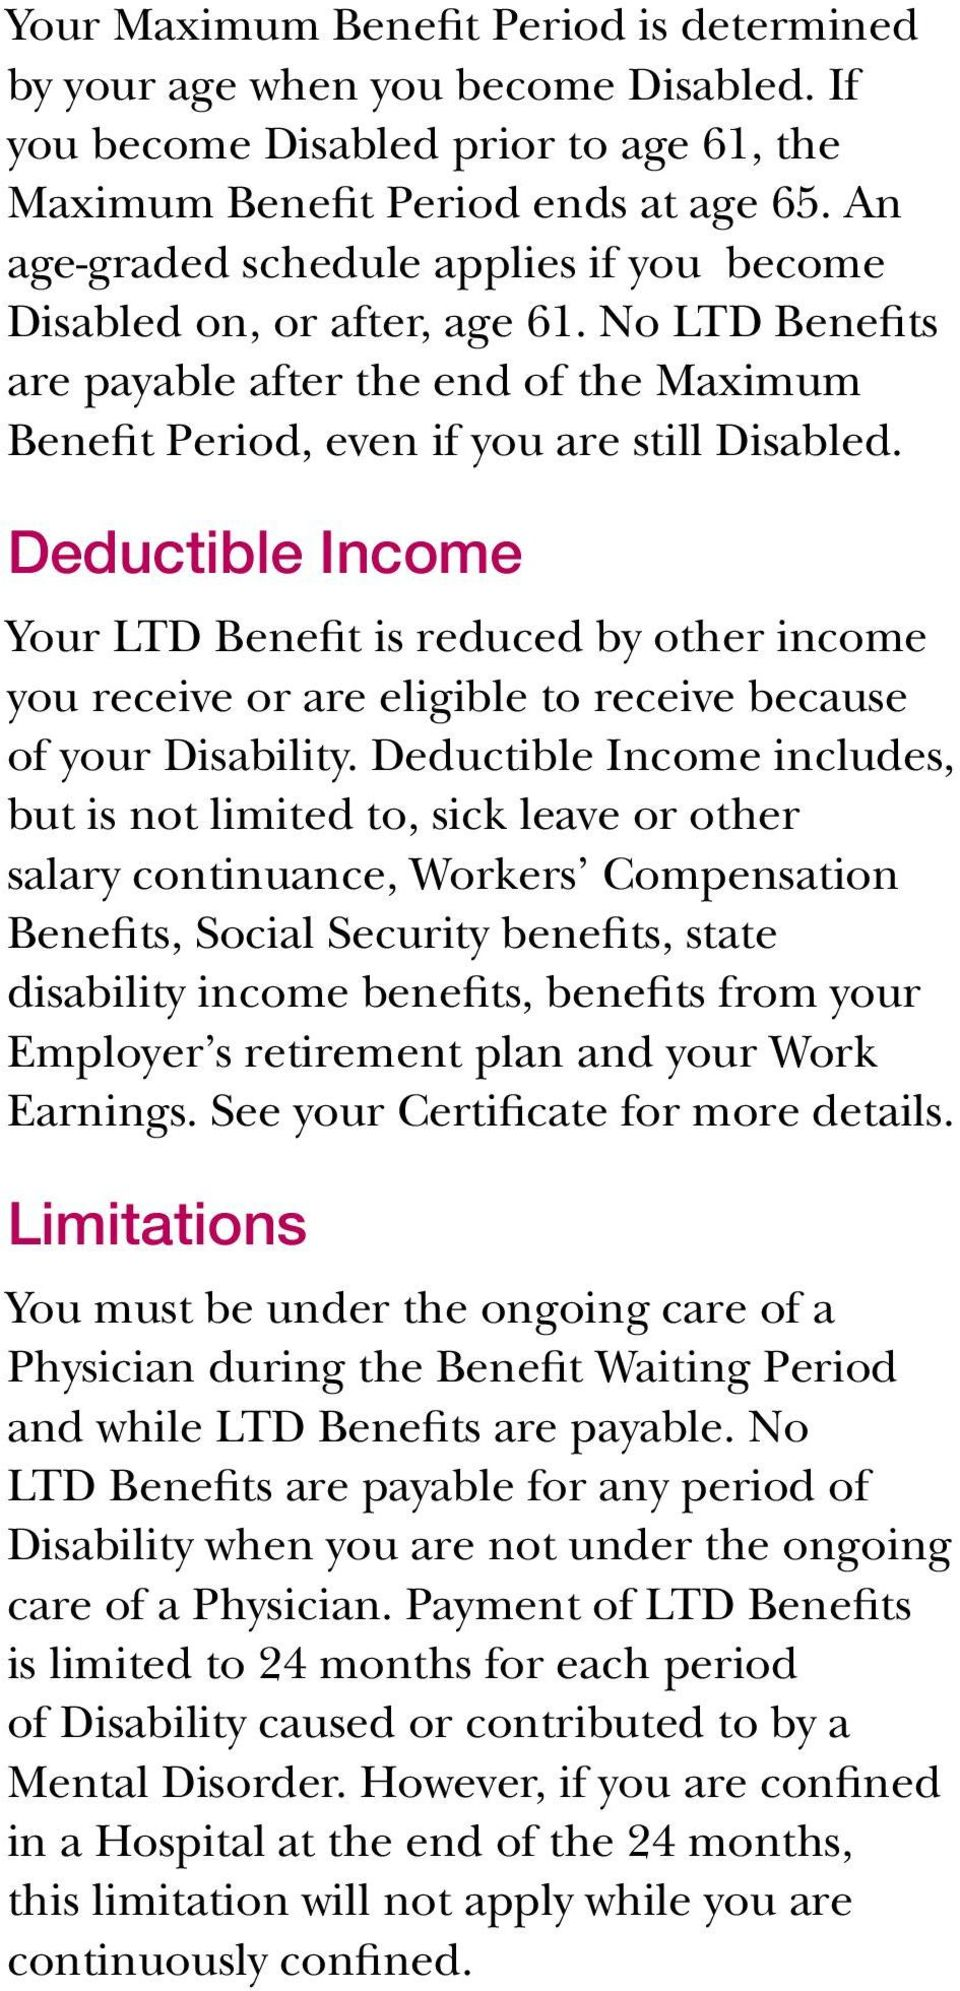 Deductible Income Your LTD Benefit is reduced by other income you receive or are eligible to receive because of your Disability.